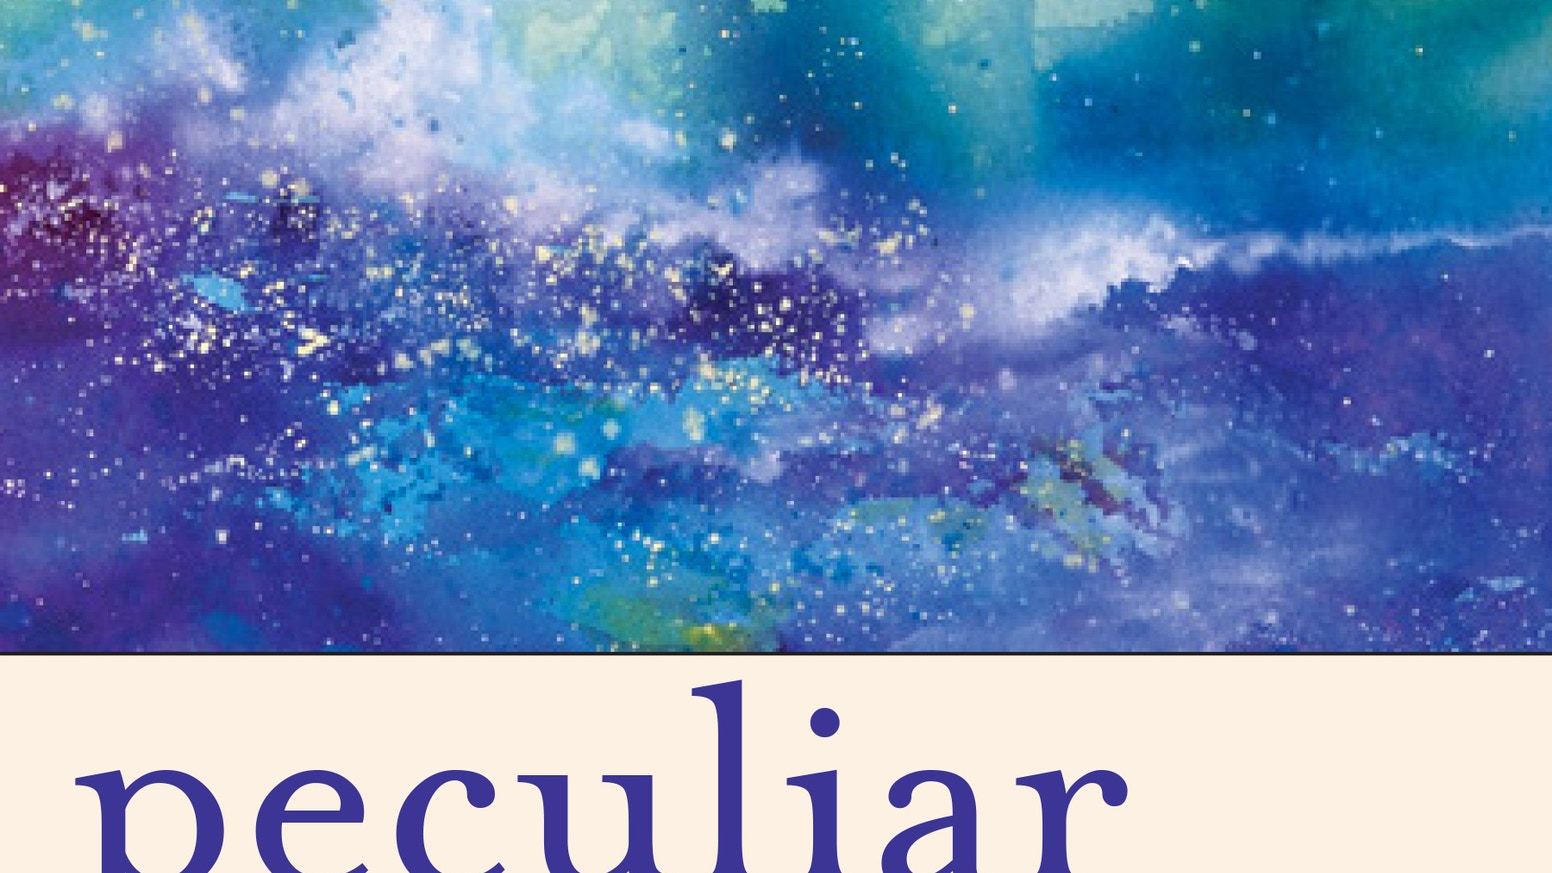 peculiar is a new queer literary journal that aims to showcase the prose, poetry, and art of Utah's LGBT/Q authors and artists.